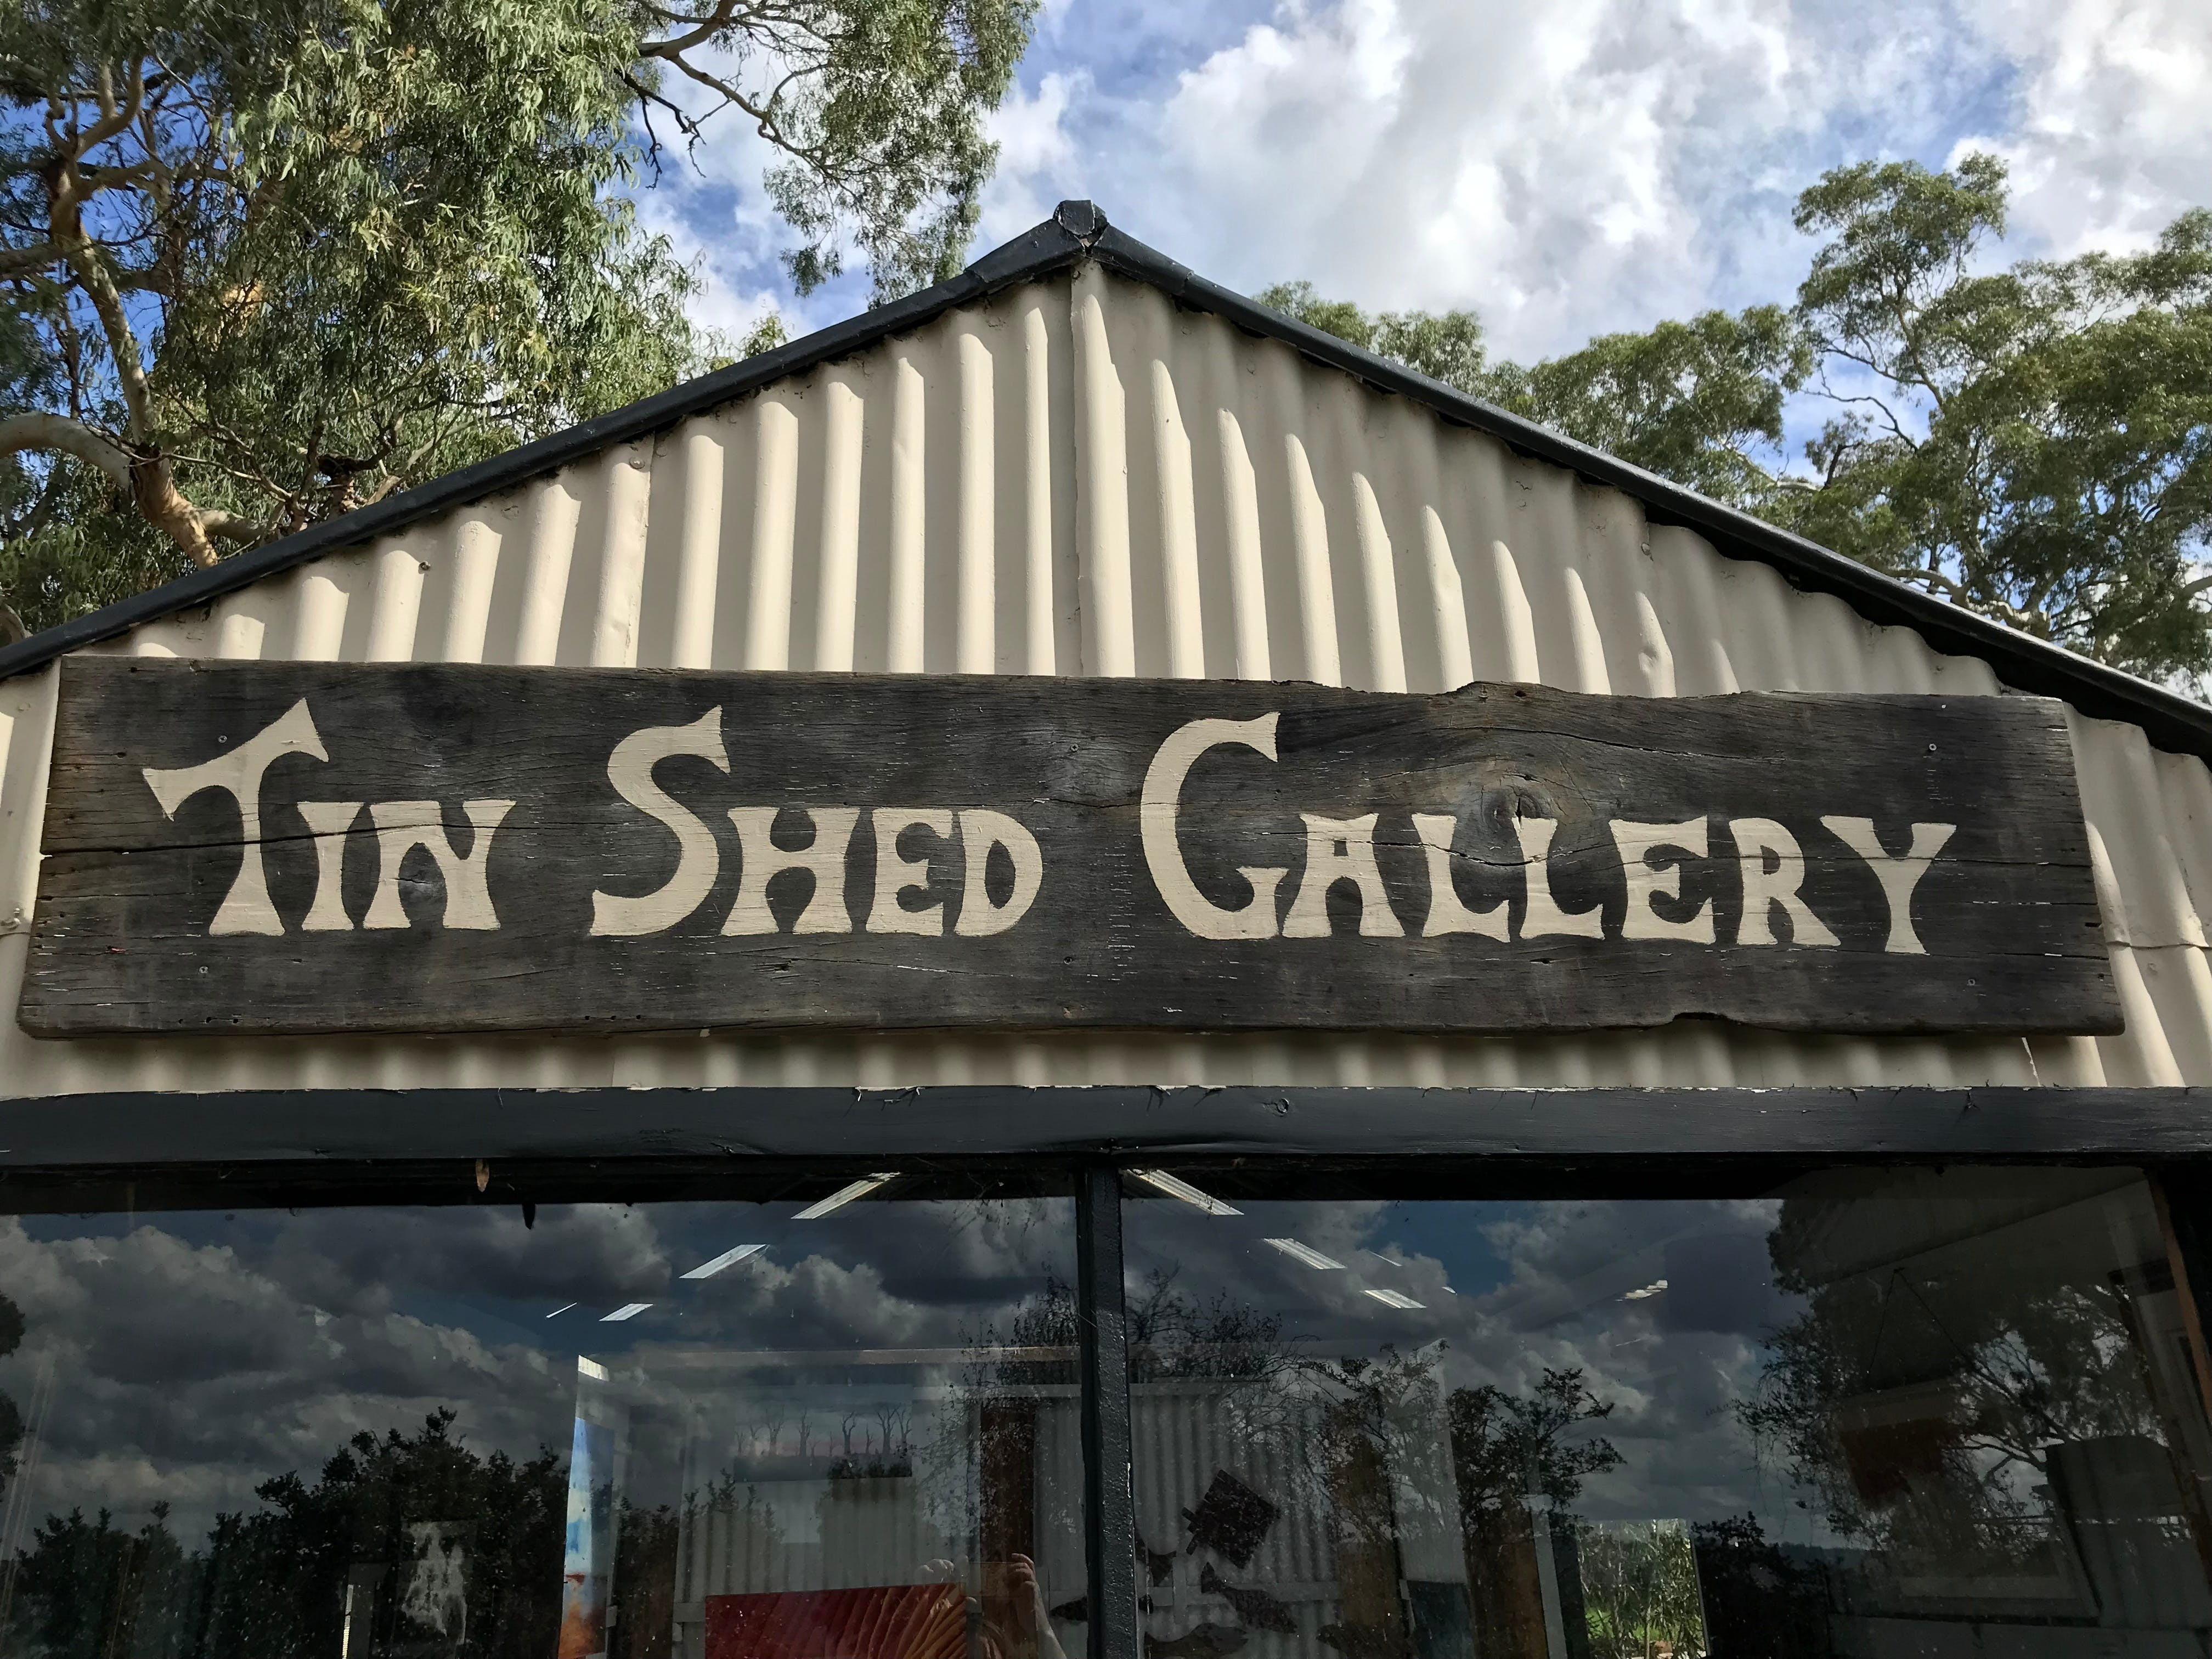 Tin Shed Gallery - Attractions Sydney